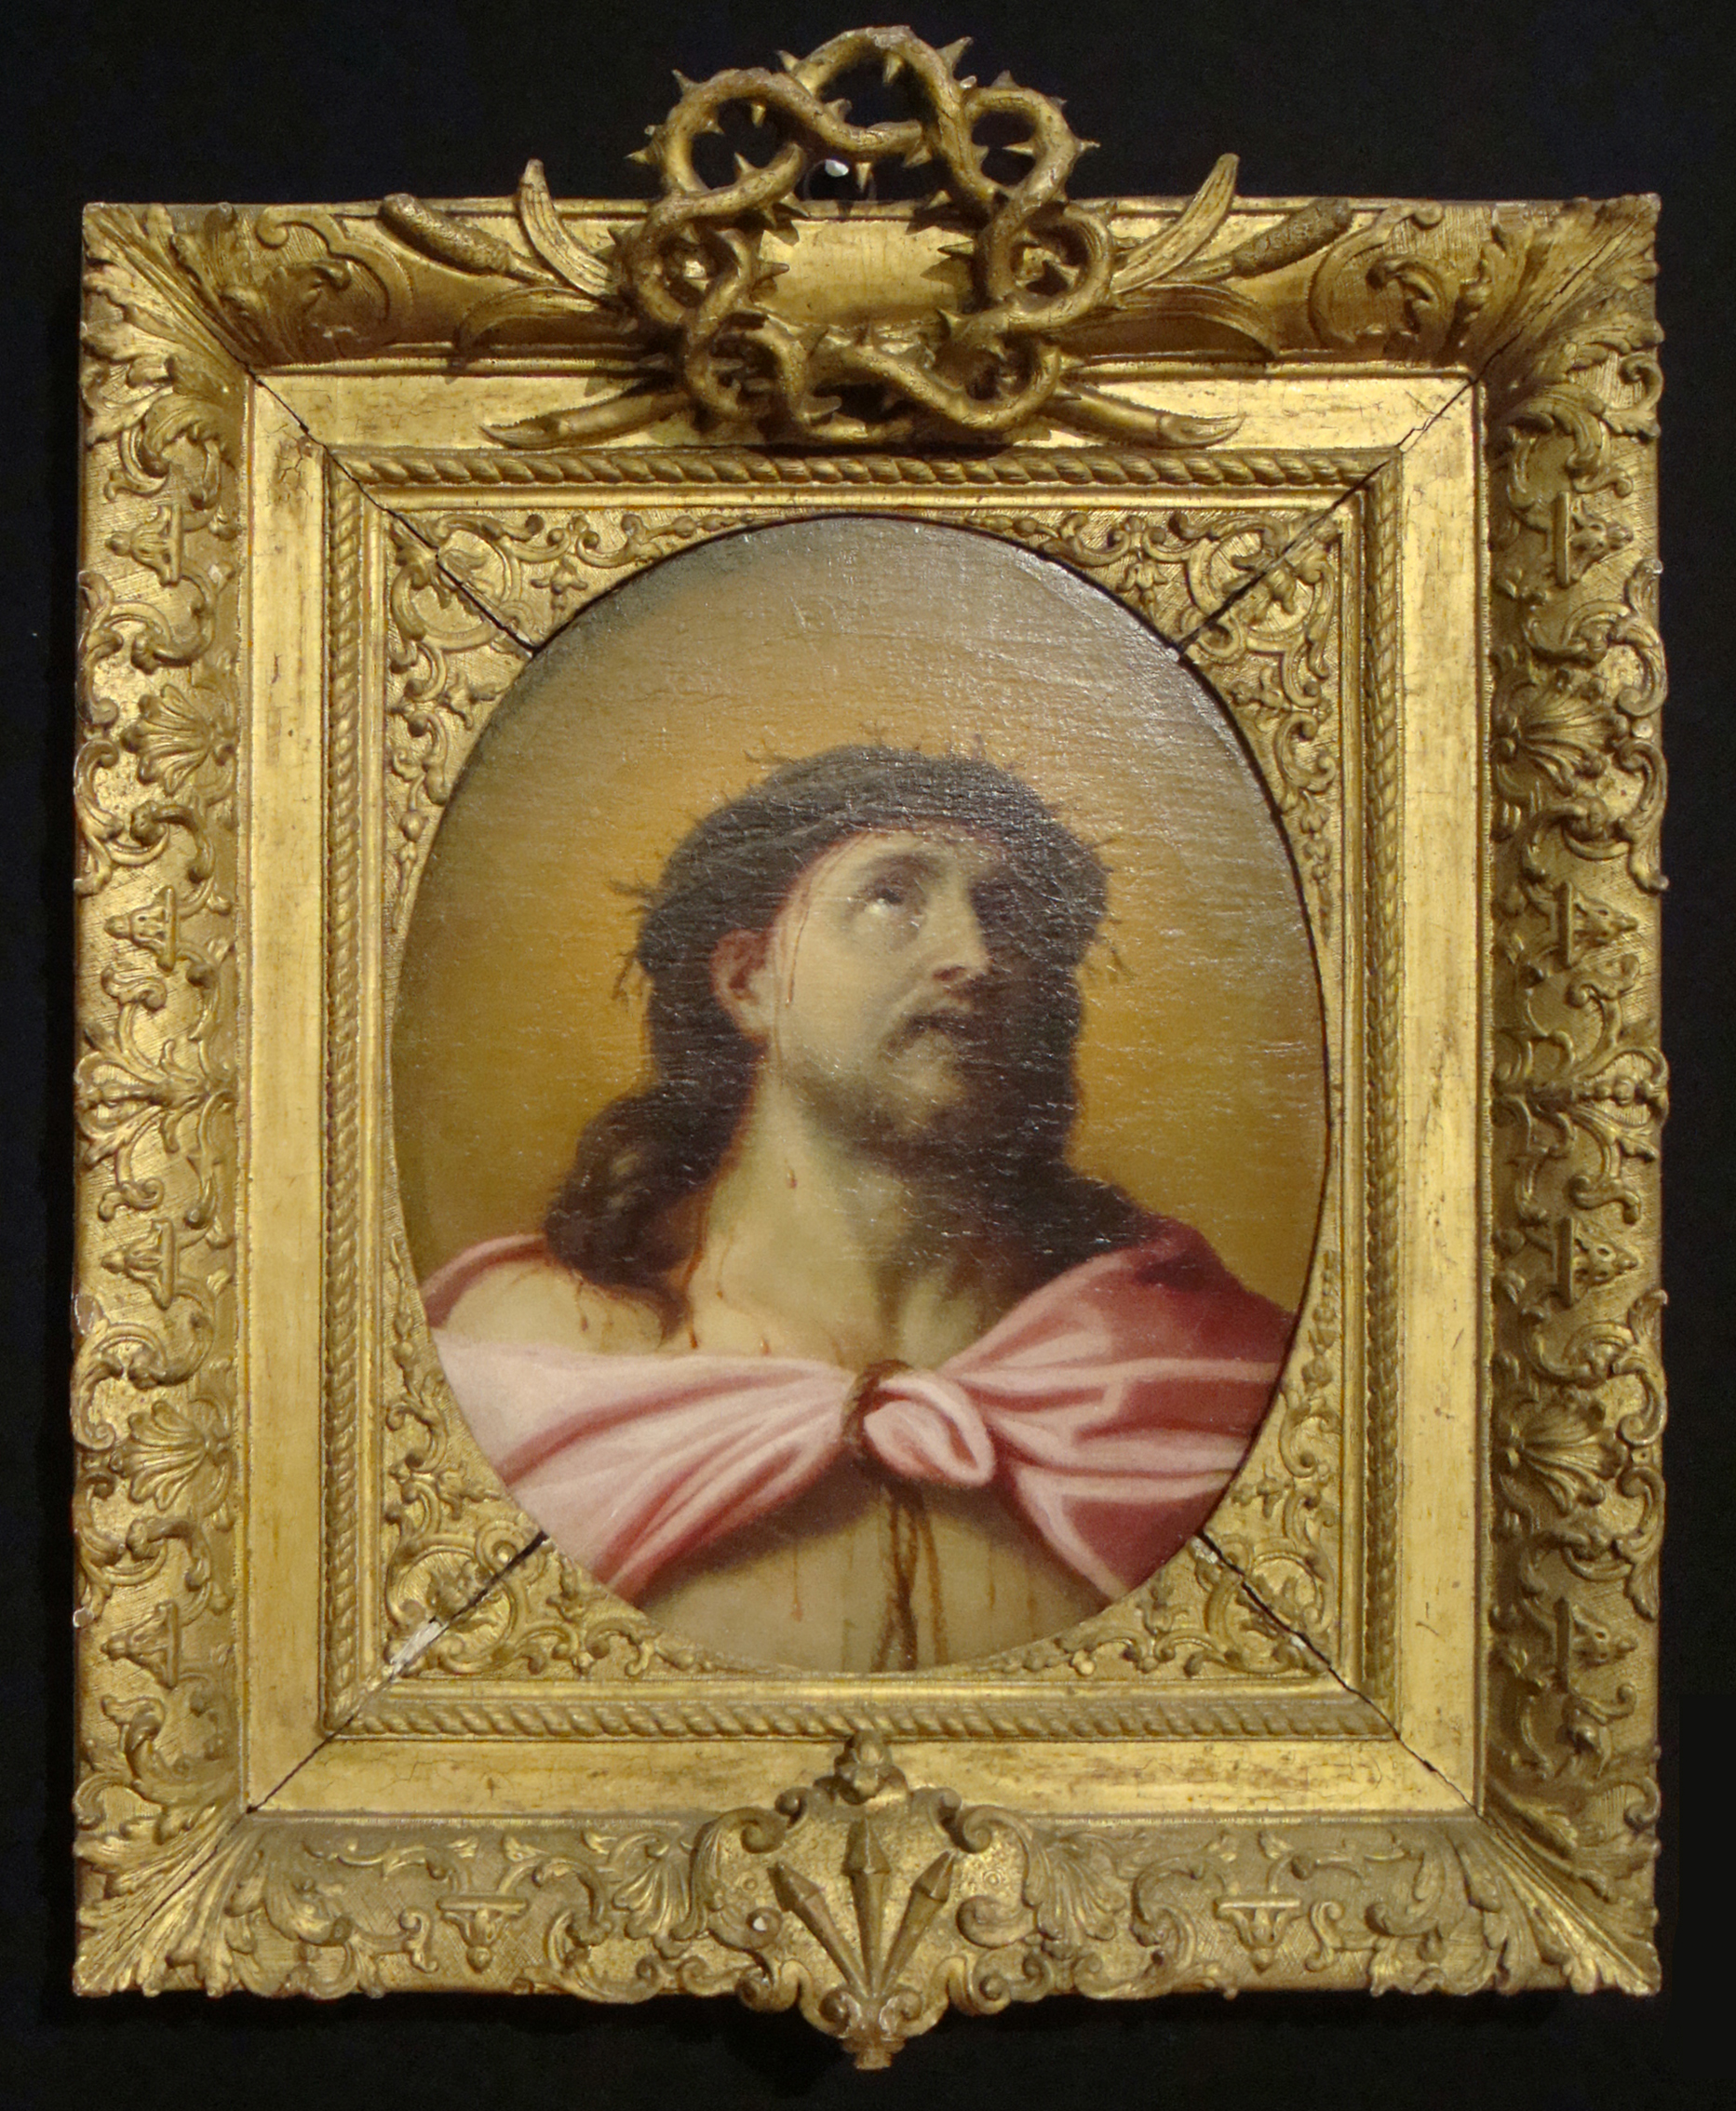 23D French School C17 Christ as the Man of Sorrows o c 39.4x31.5cm Christie s 24Oct2012 Lot90